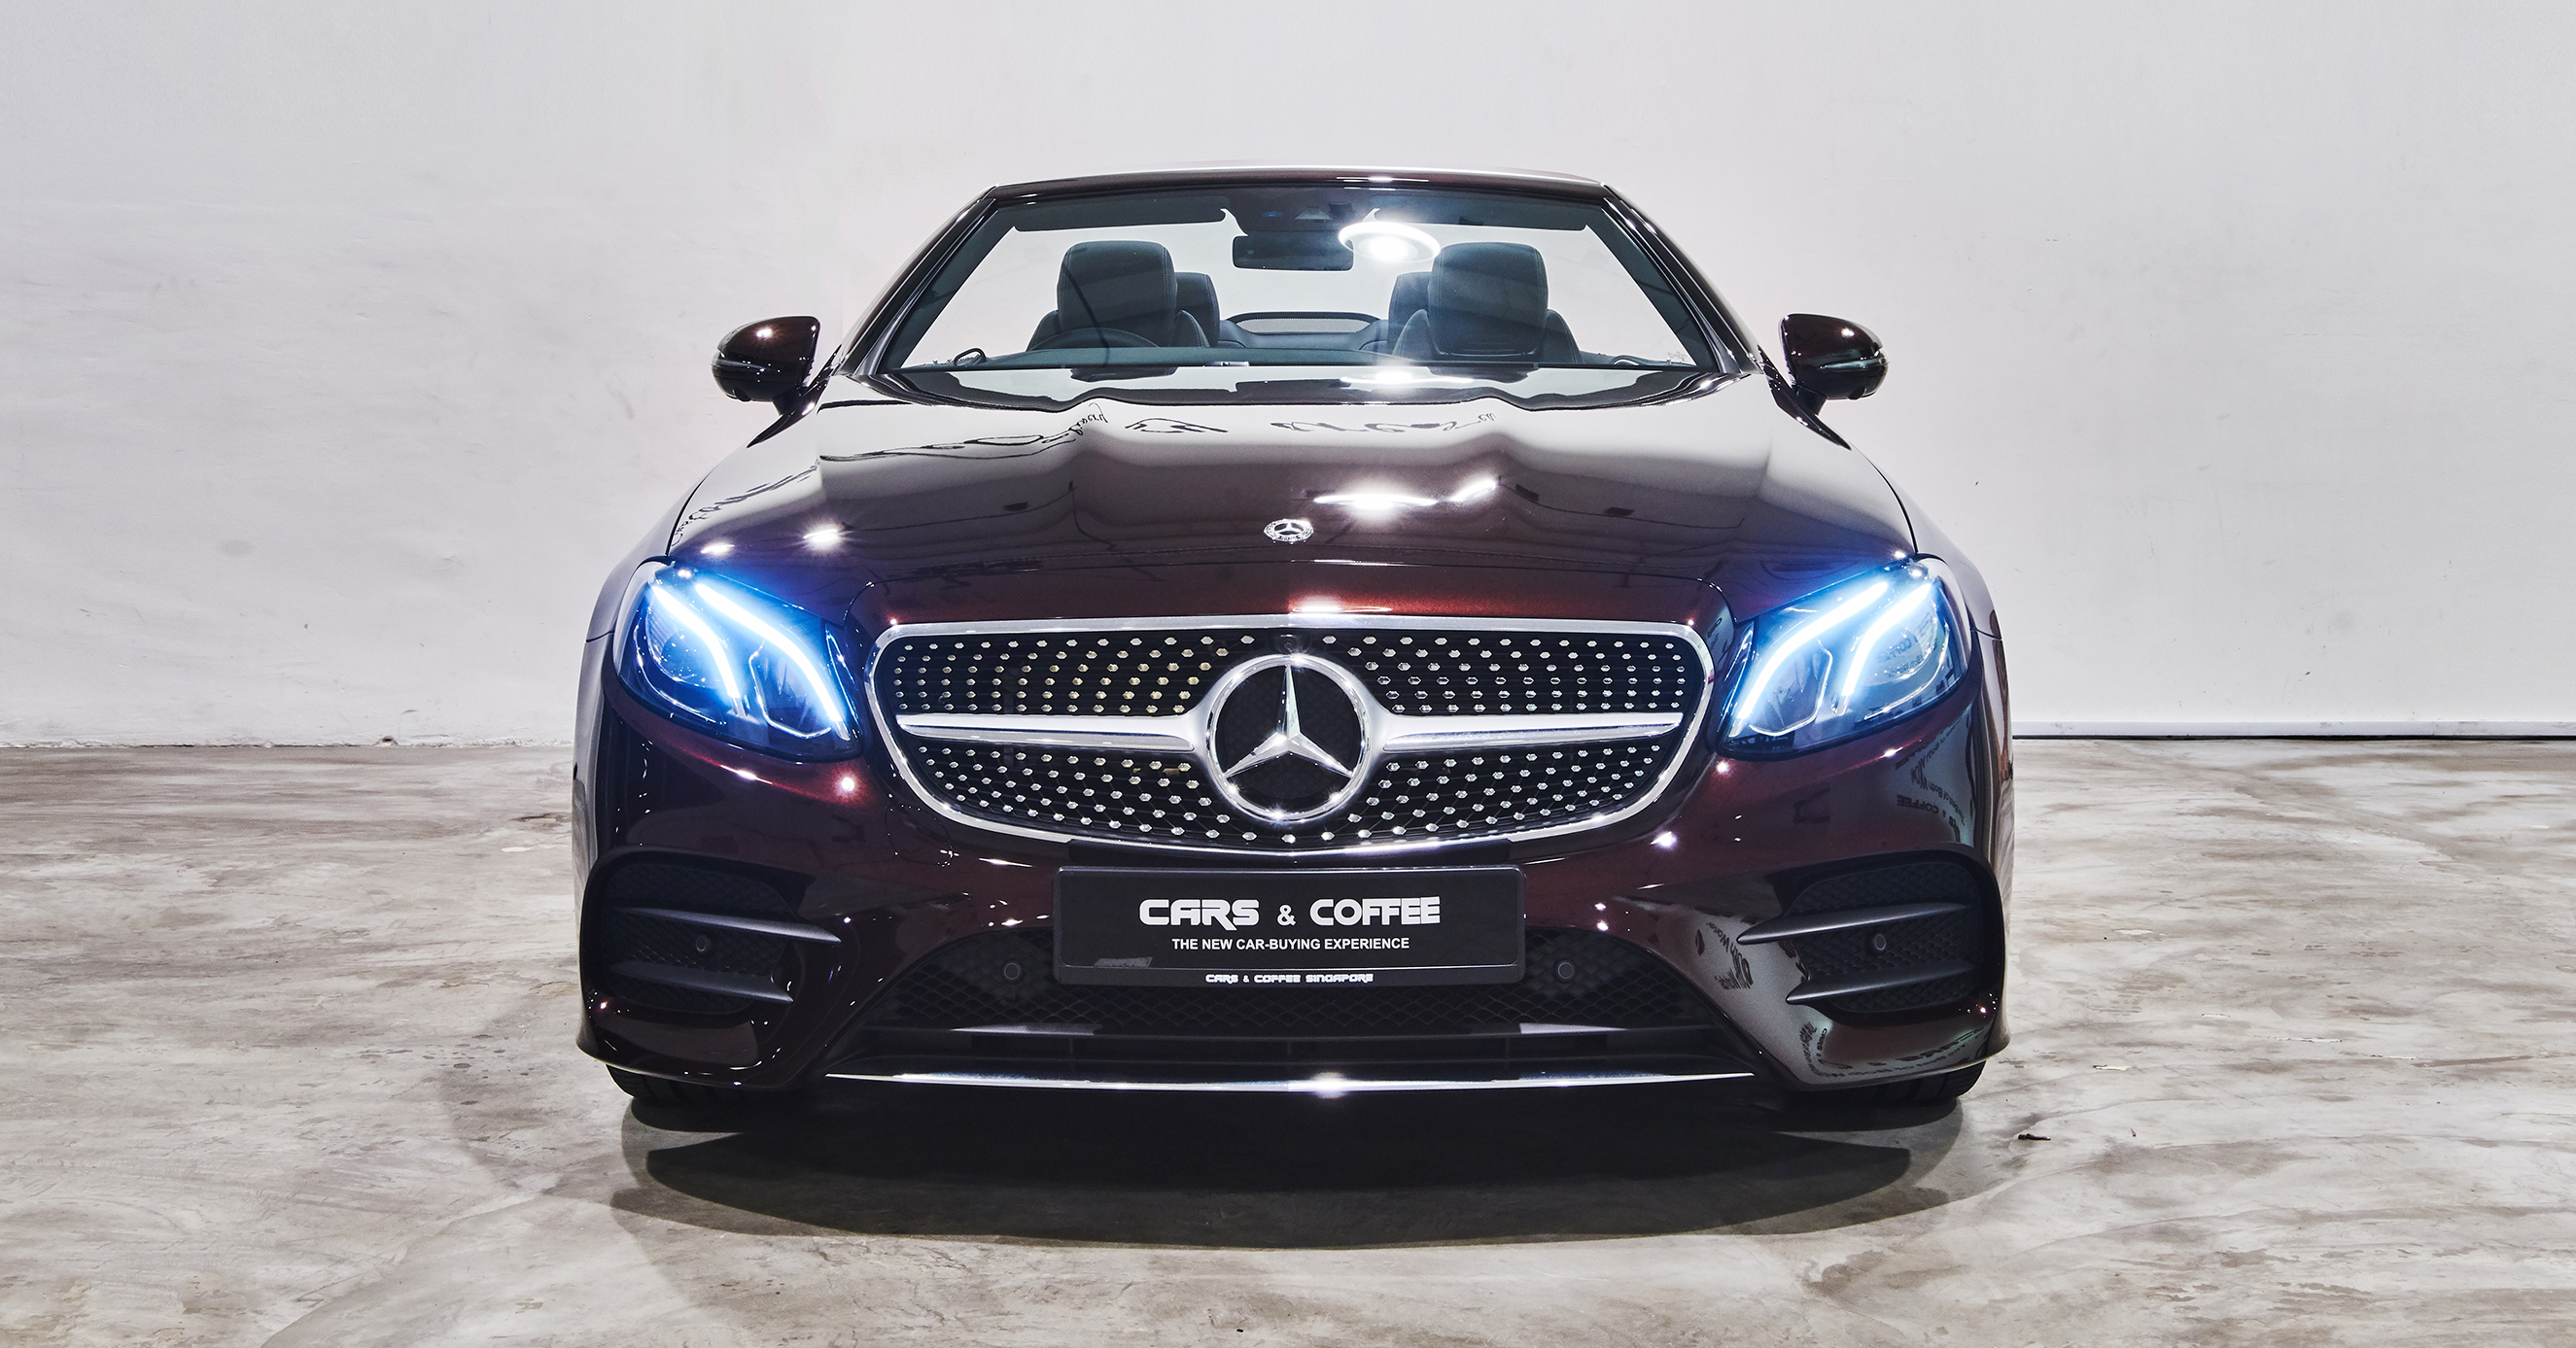 Open-top driving makes every journey an adventure. The Mercedes-Benz E-Class Cabriolet's selected highlights at a glance.